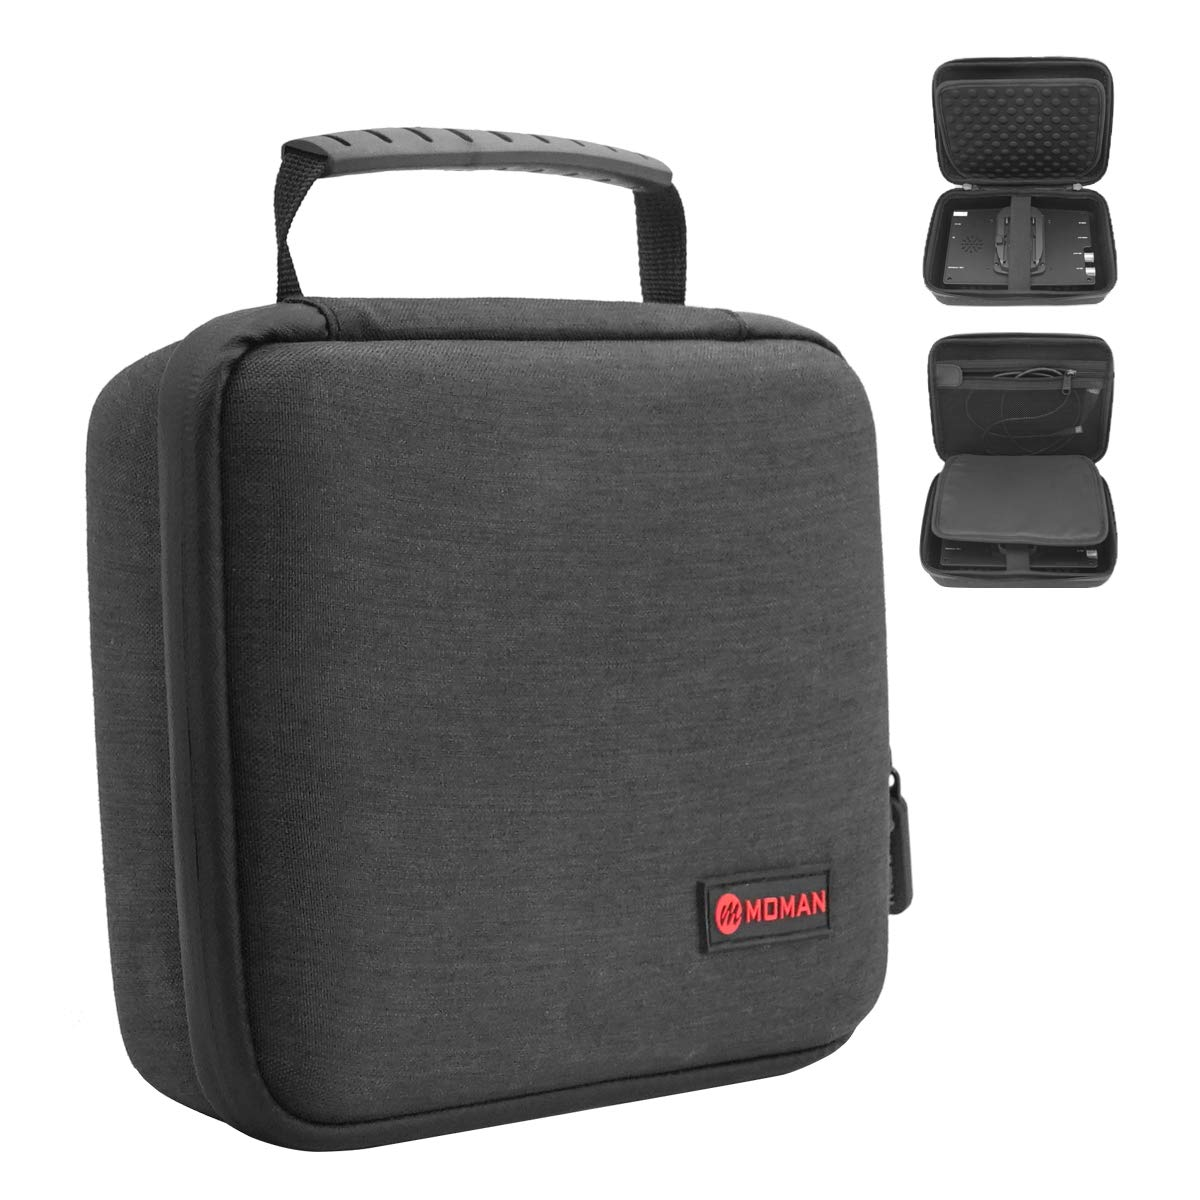 Moman EVA Travel Case 7 Inch, Multi-Functional Waterproof Protective Light-Weight Carrying Bag, for Feelworld Neewer Monitor Video Light Photography Accessories